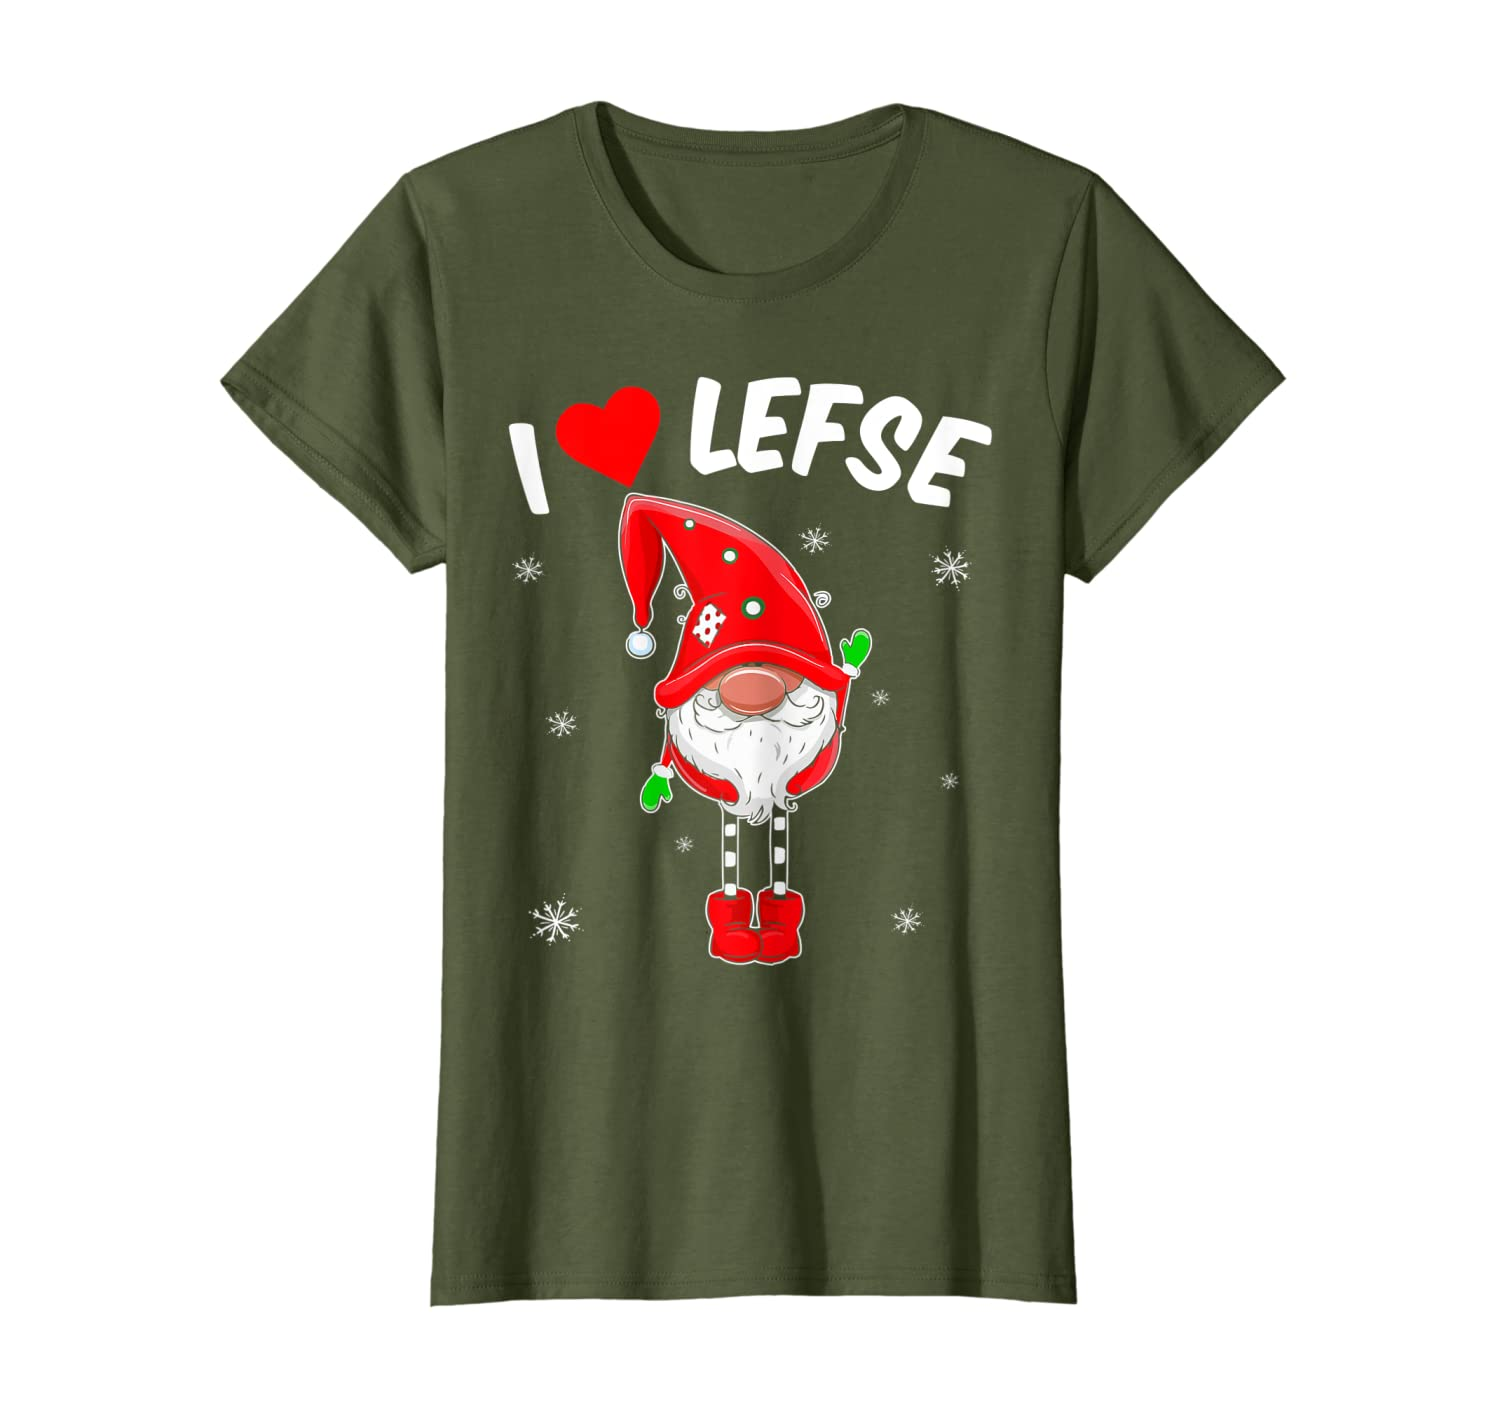 Lefse Tomte Gnome Christmas Scandinavian Gnome Baking tee T-Shirt-TH